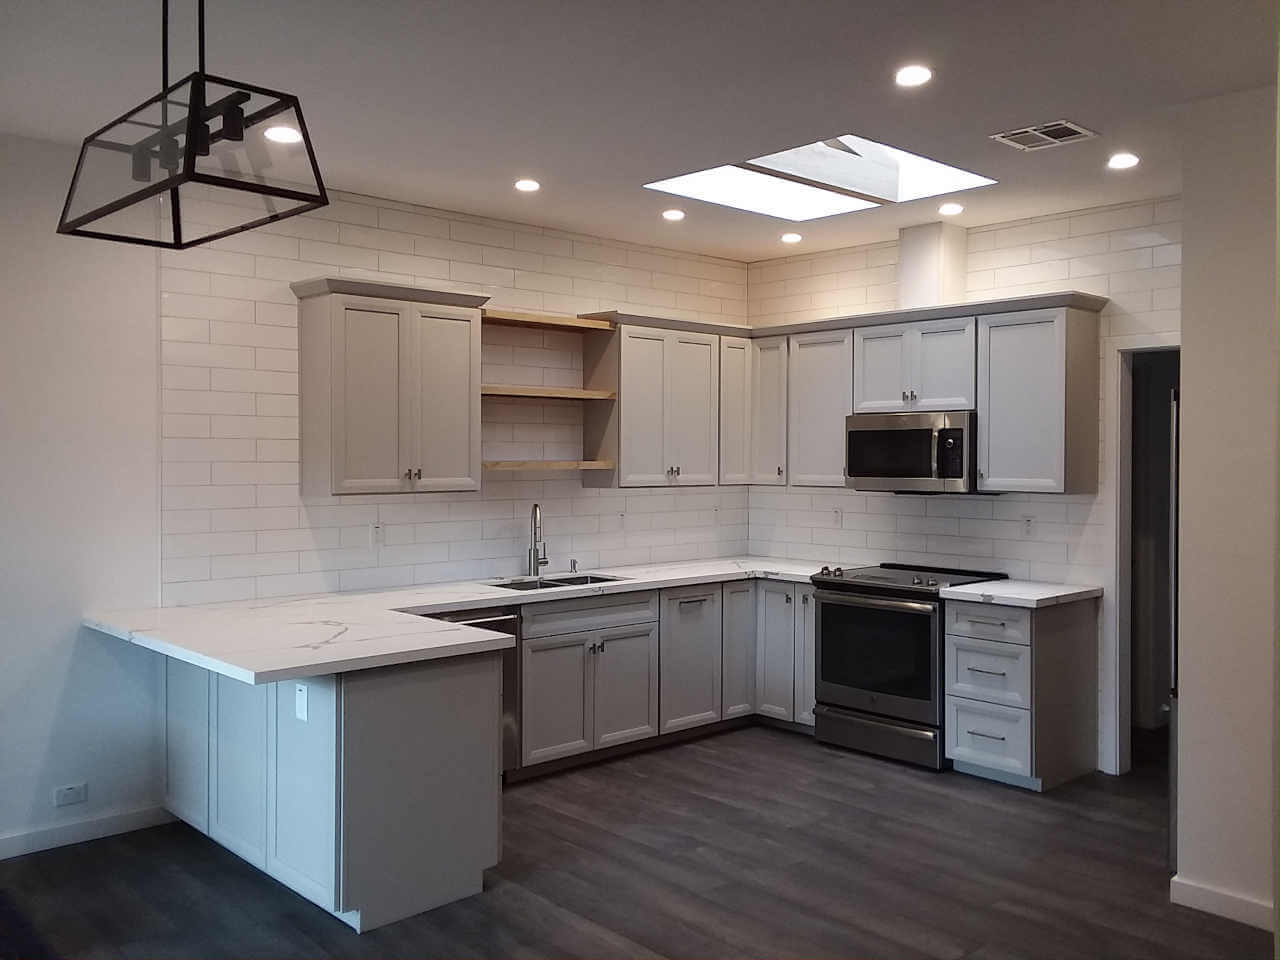 Custom gray kitchen cabinets, quartz countertops and subway tile backsplash